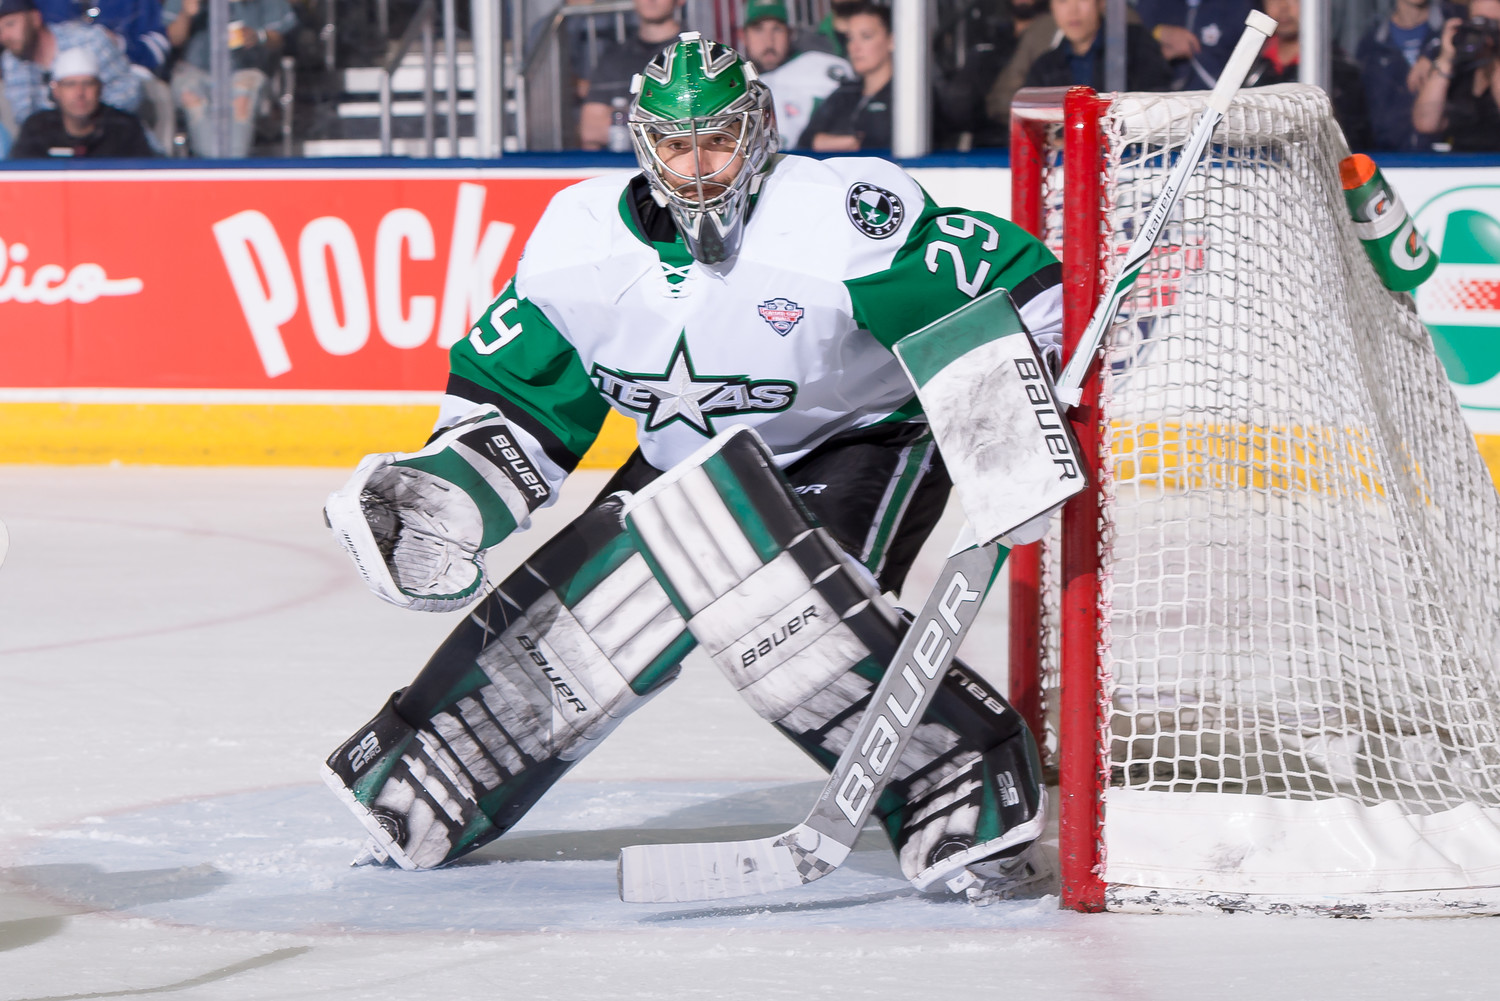 Mike McKenna and the Stars lost to the Toronto Marlies 6-5 in Game 1 of the Calder Cup Finals on Saturday.